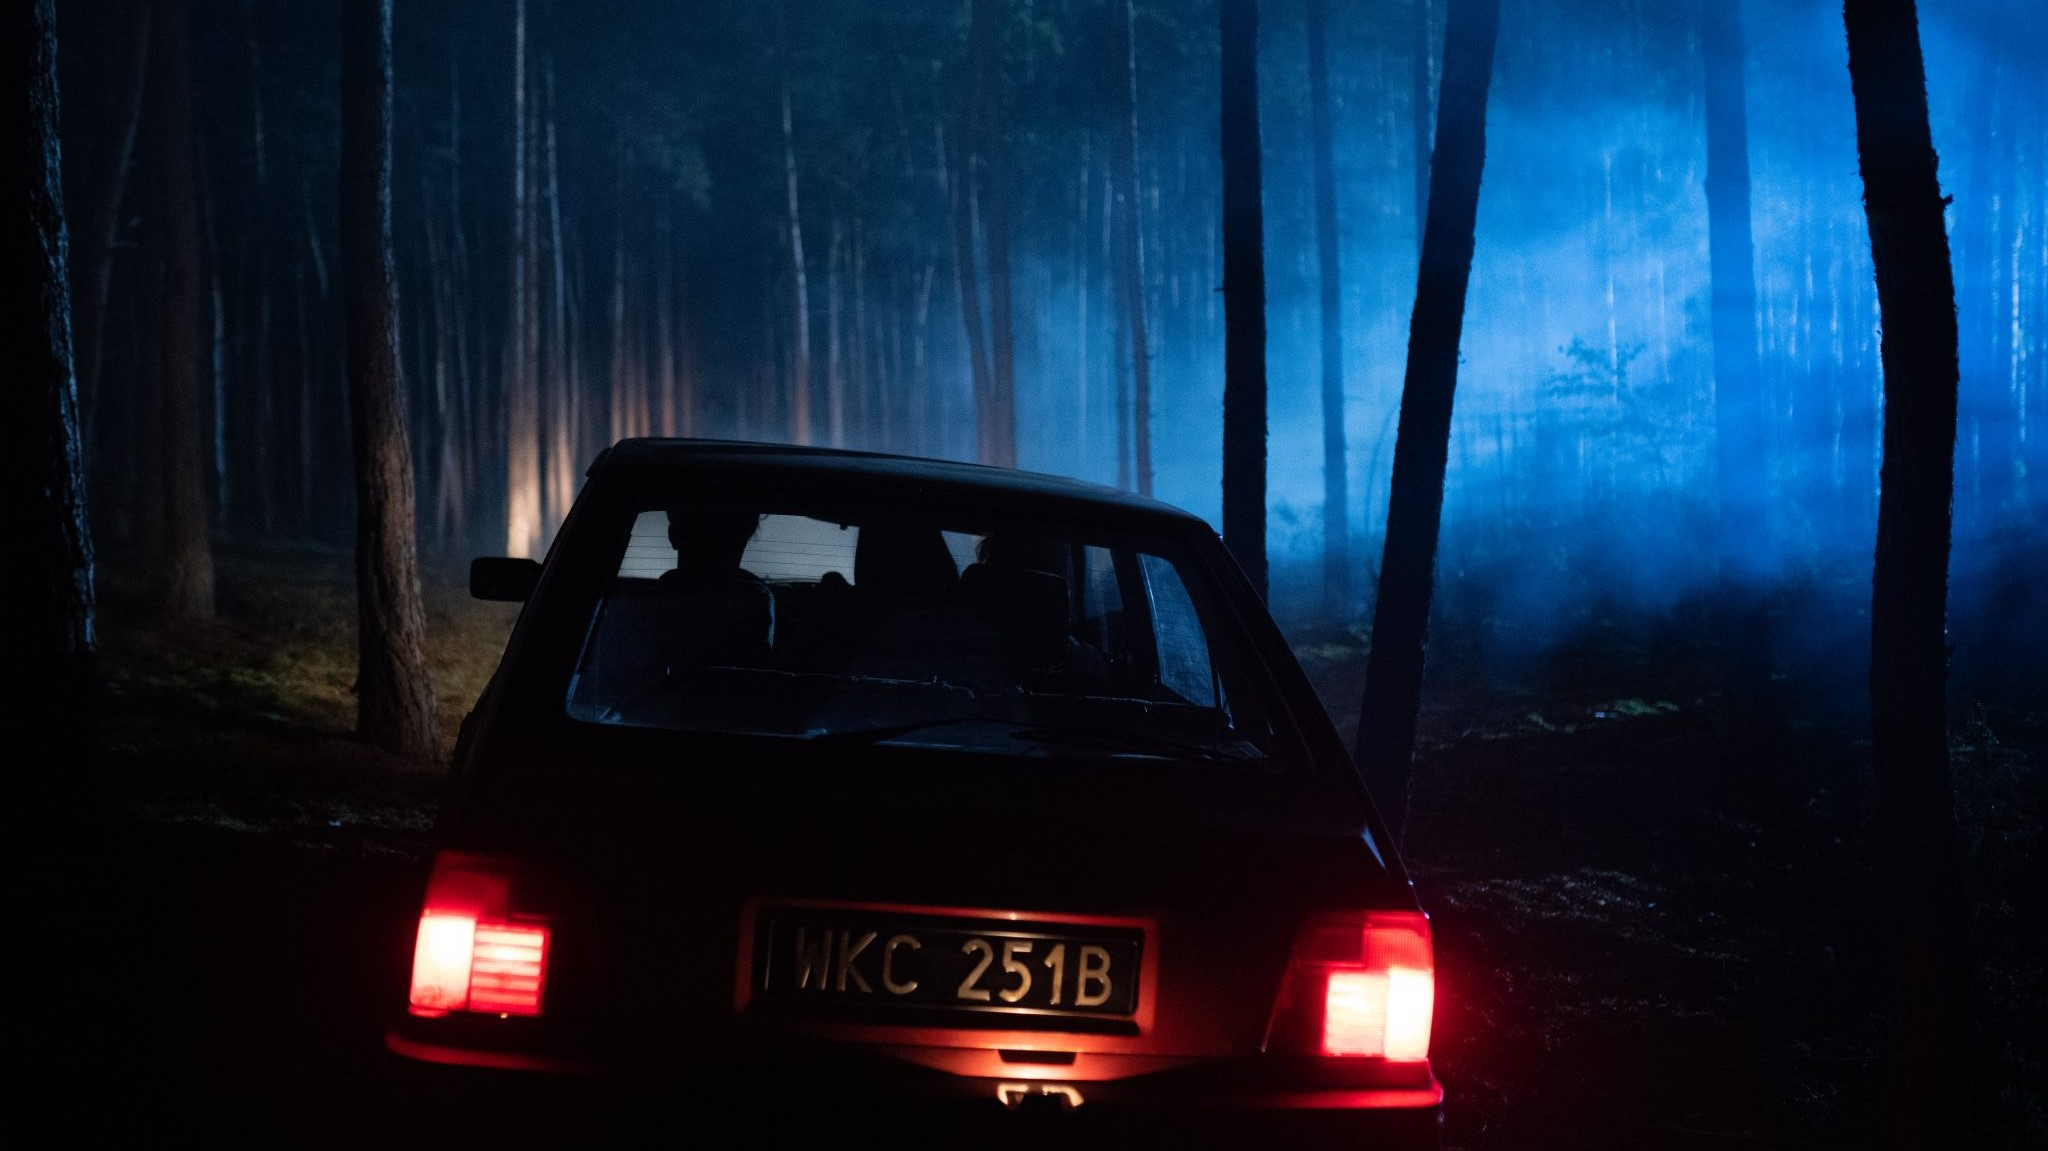 Still from the Netflix show The Woods, adapted from a Harlan Coben thriller